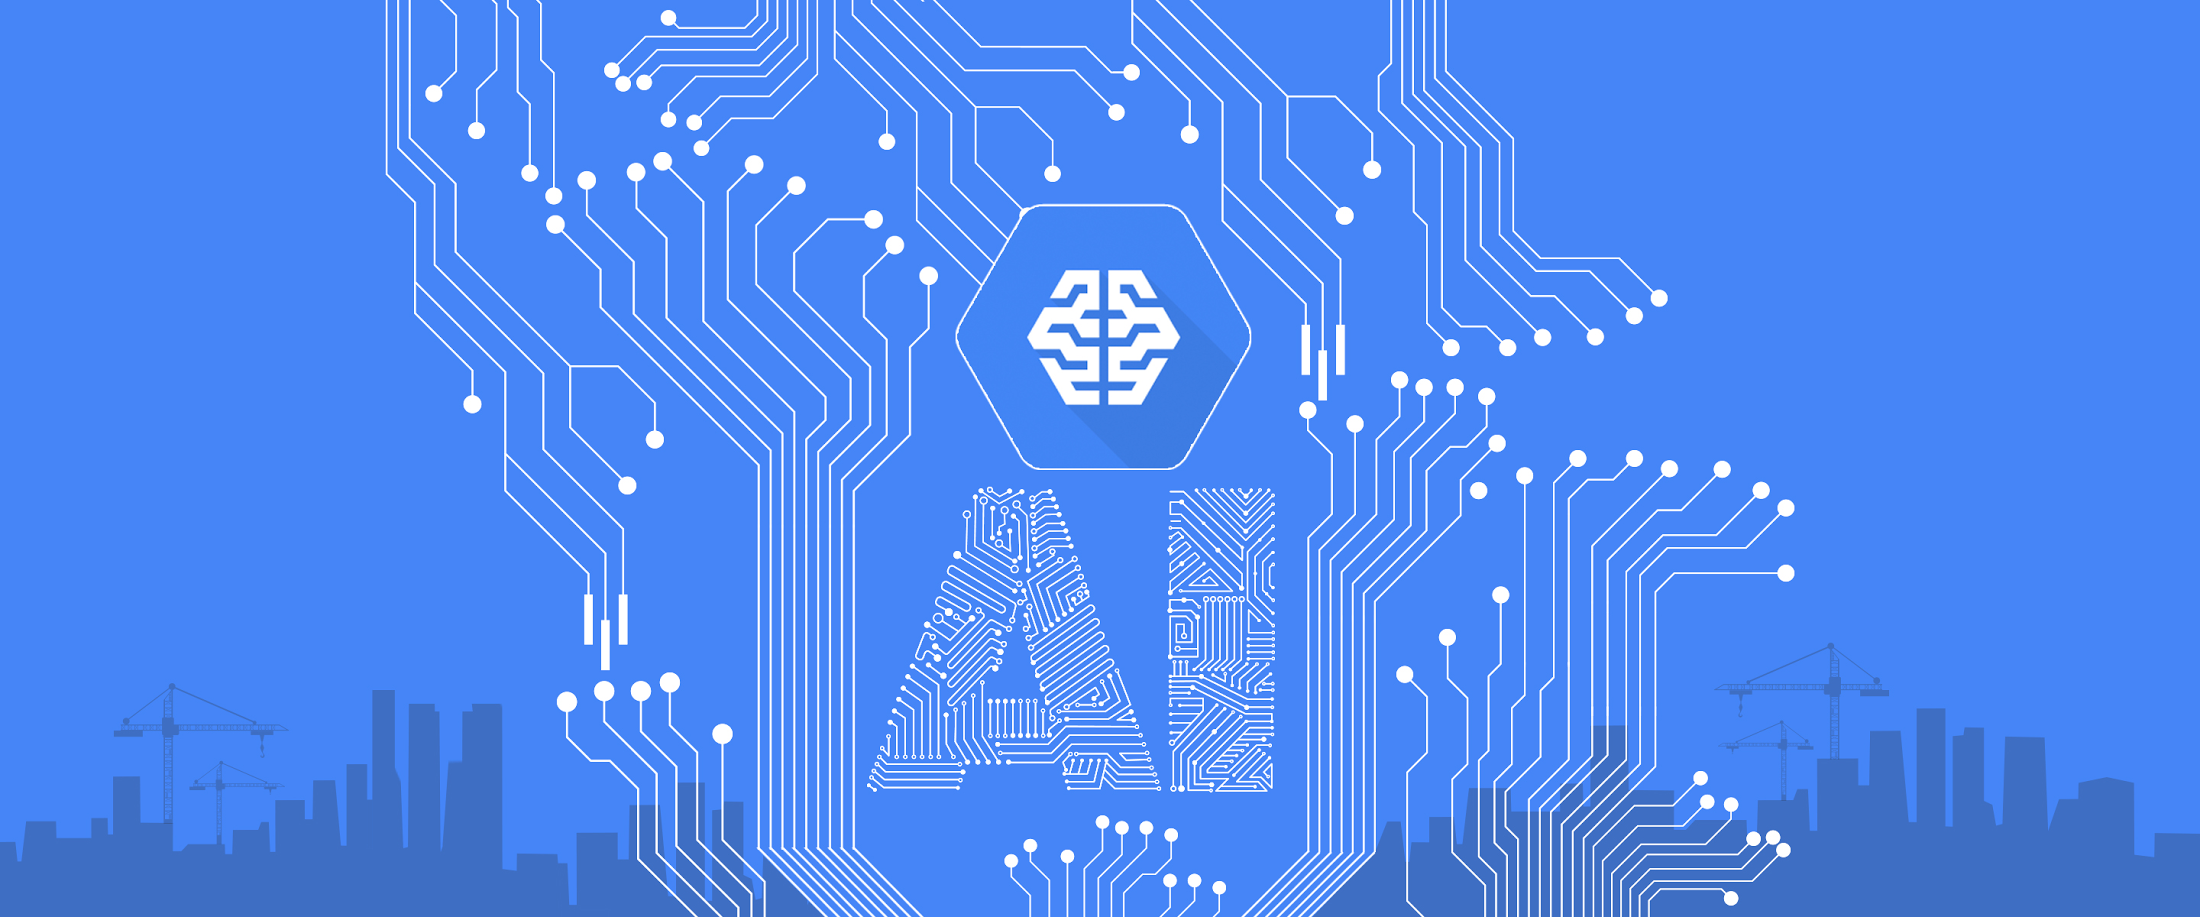 Unlocking the power of AI with solutions designed for every enterprise